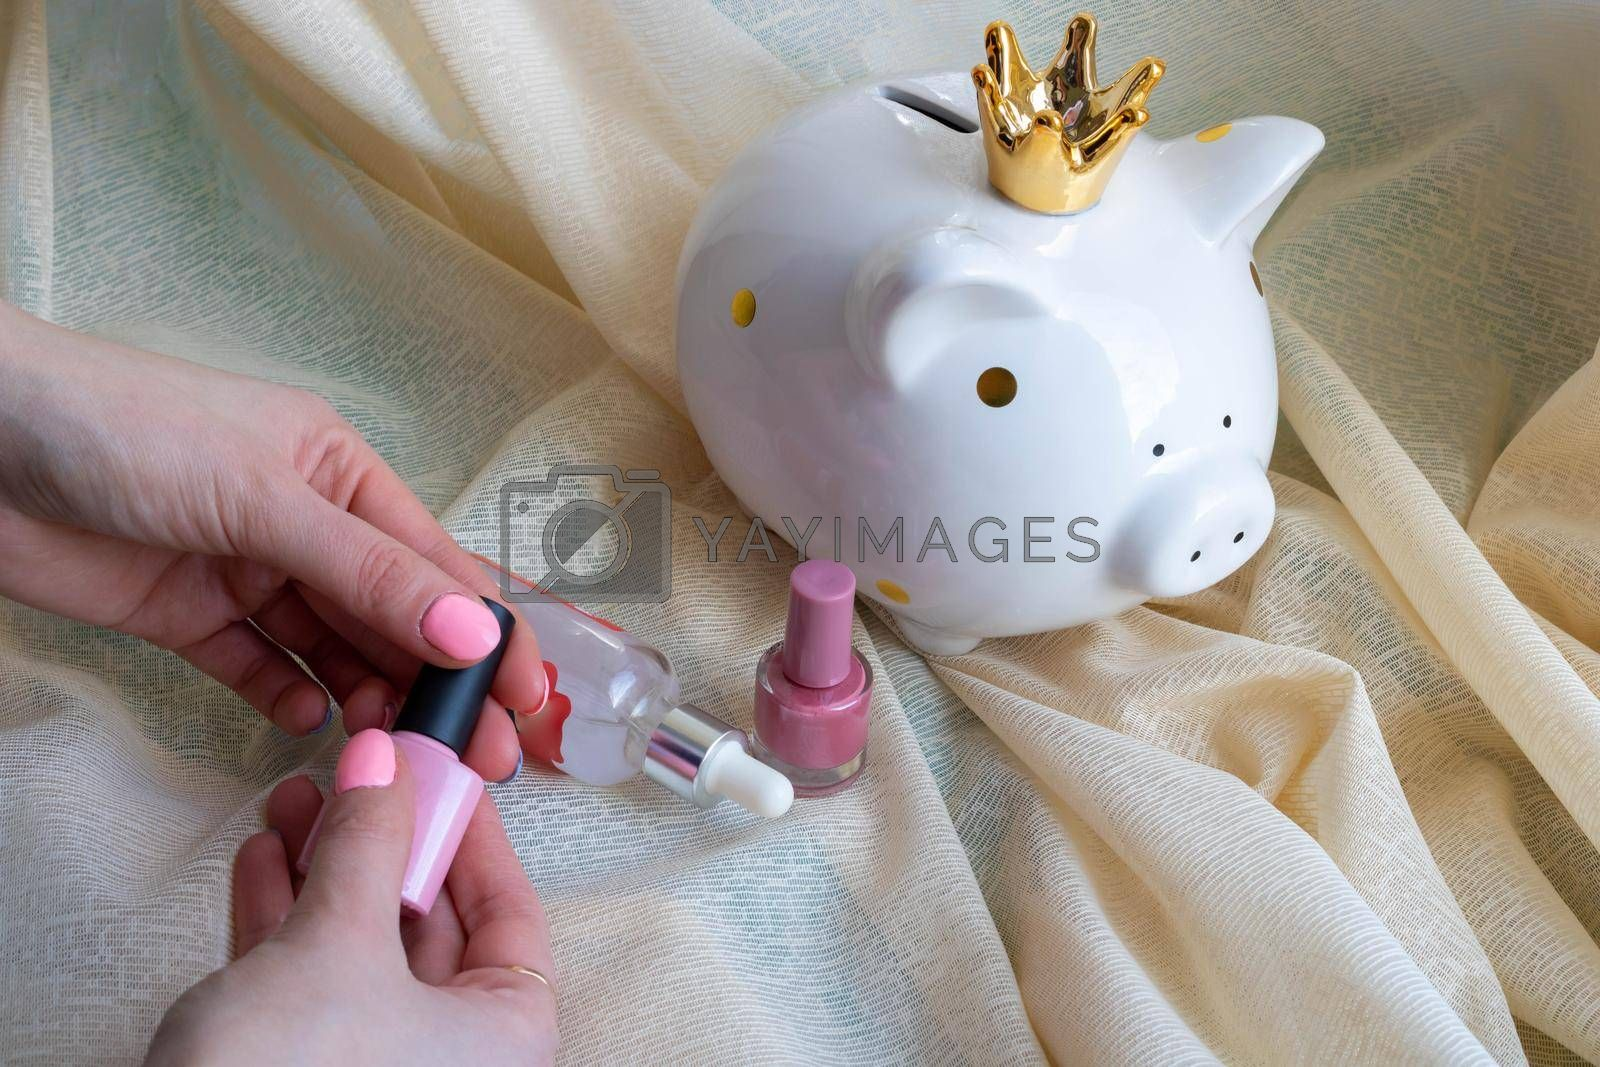 White piggy bank-piggy and female hands with pink nail design. Pink shiny nail polish manicure. Women's hands on a background of beige tulle.